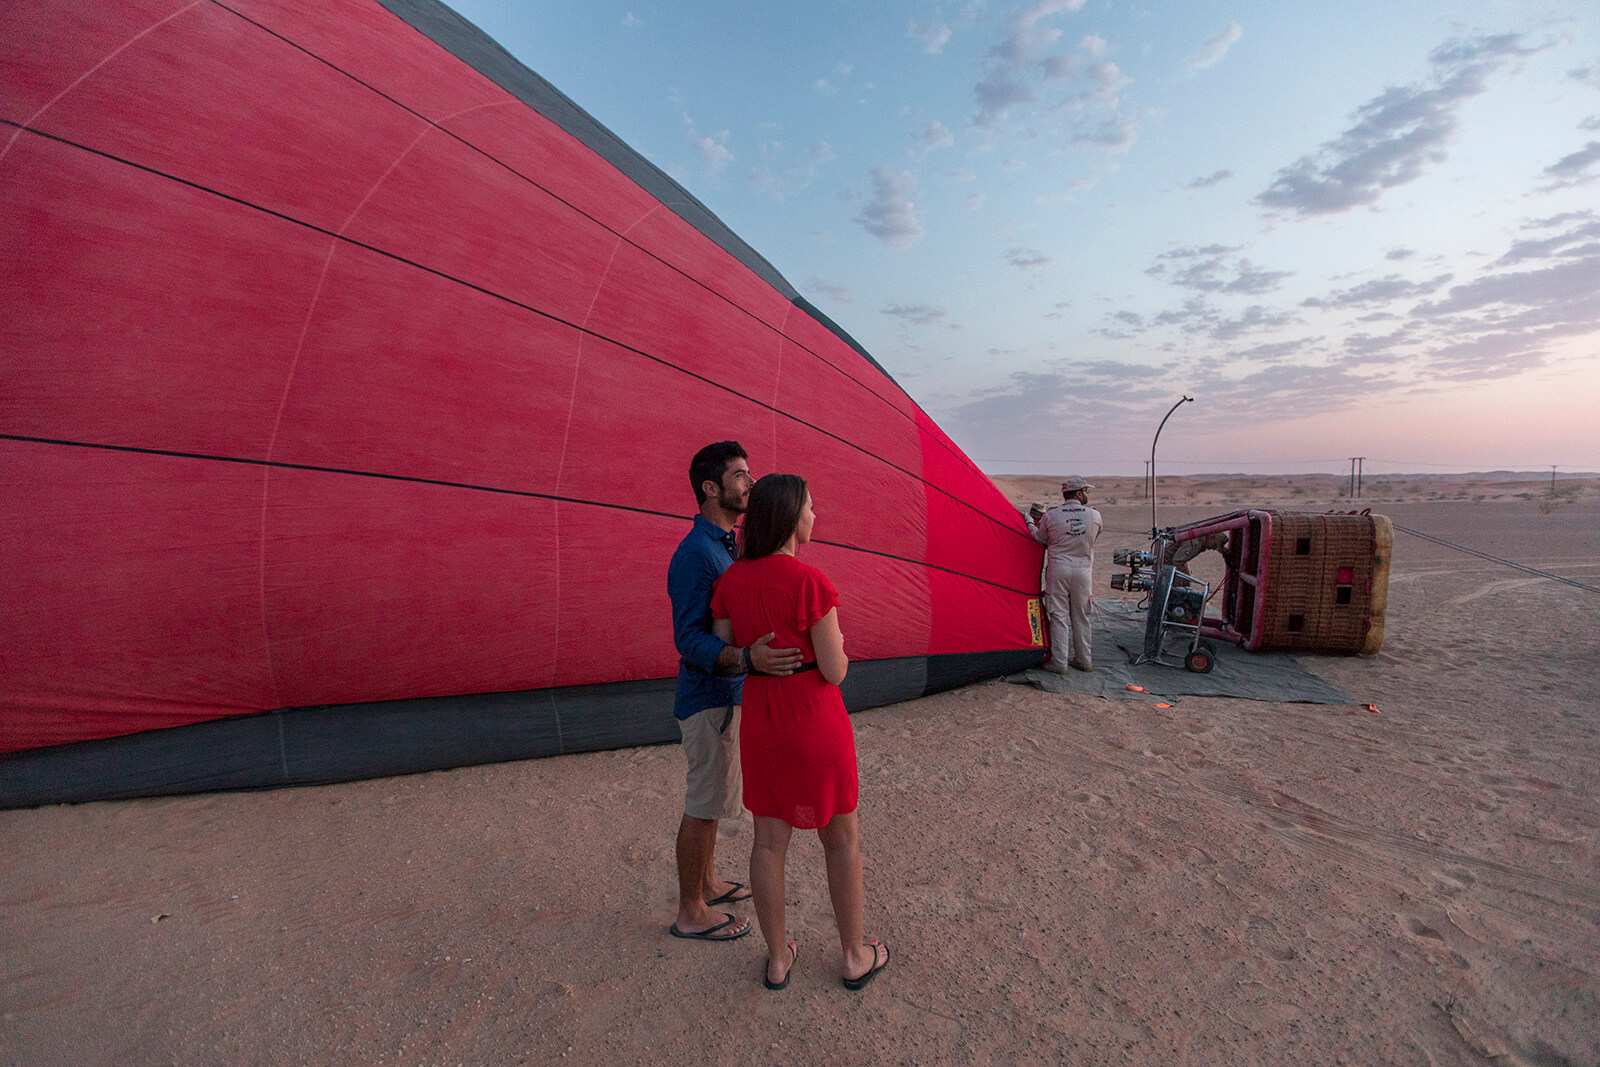 Romantic Thing to do in Dubai